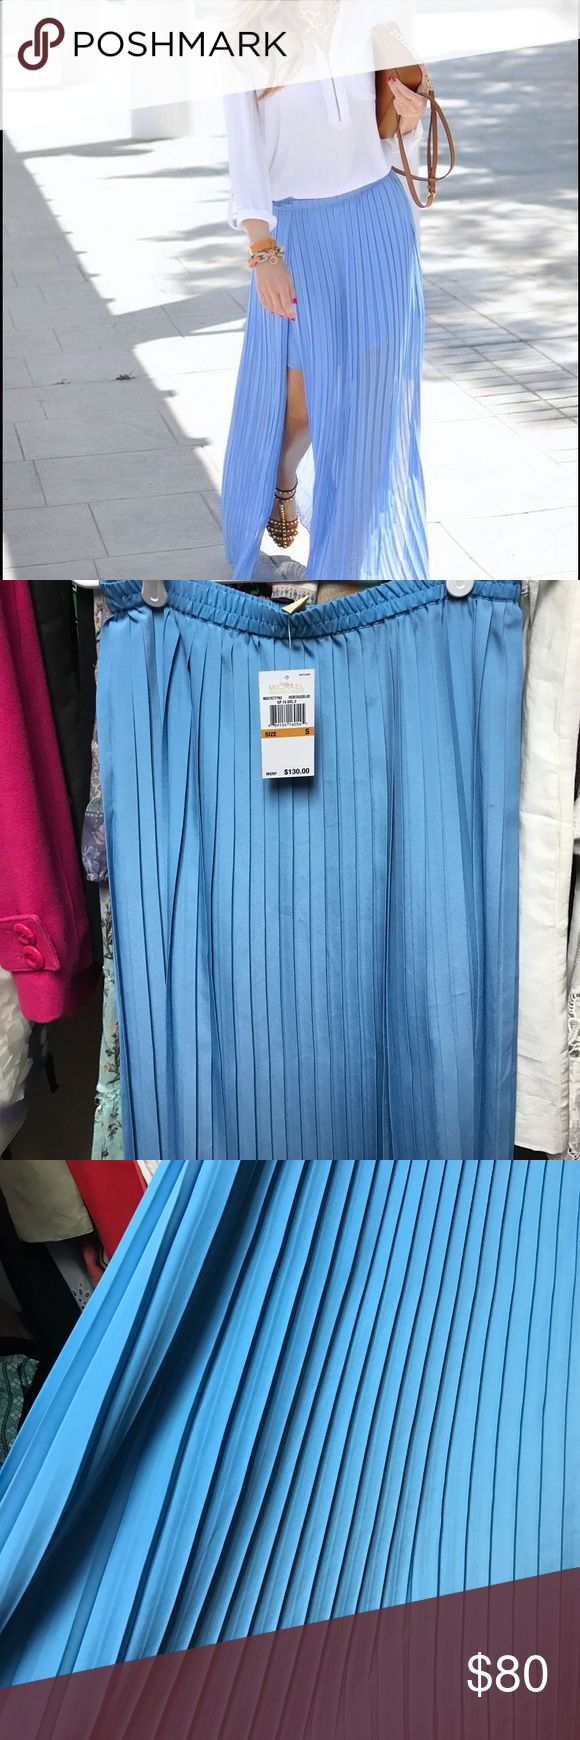 Michael Kors maxi skirt Brand new with tags still attached! This pleated blue maxi is perfect and lightweight for spring/summer! This skirt is unlined and has one slide slit as shown in photo. Pull up style. Can fit up to a medium IMO. Retailed for 130.00! No trades *** 1st photo is a stock photo but appears to have a lining, skirt being sold does not have one. Michael Kors Skirts Maxi